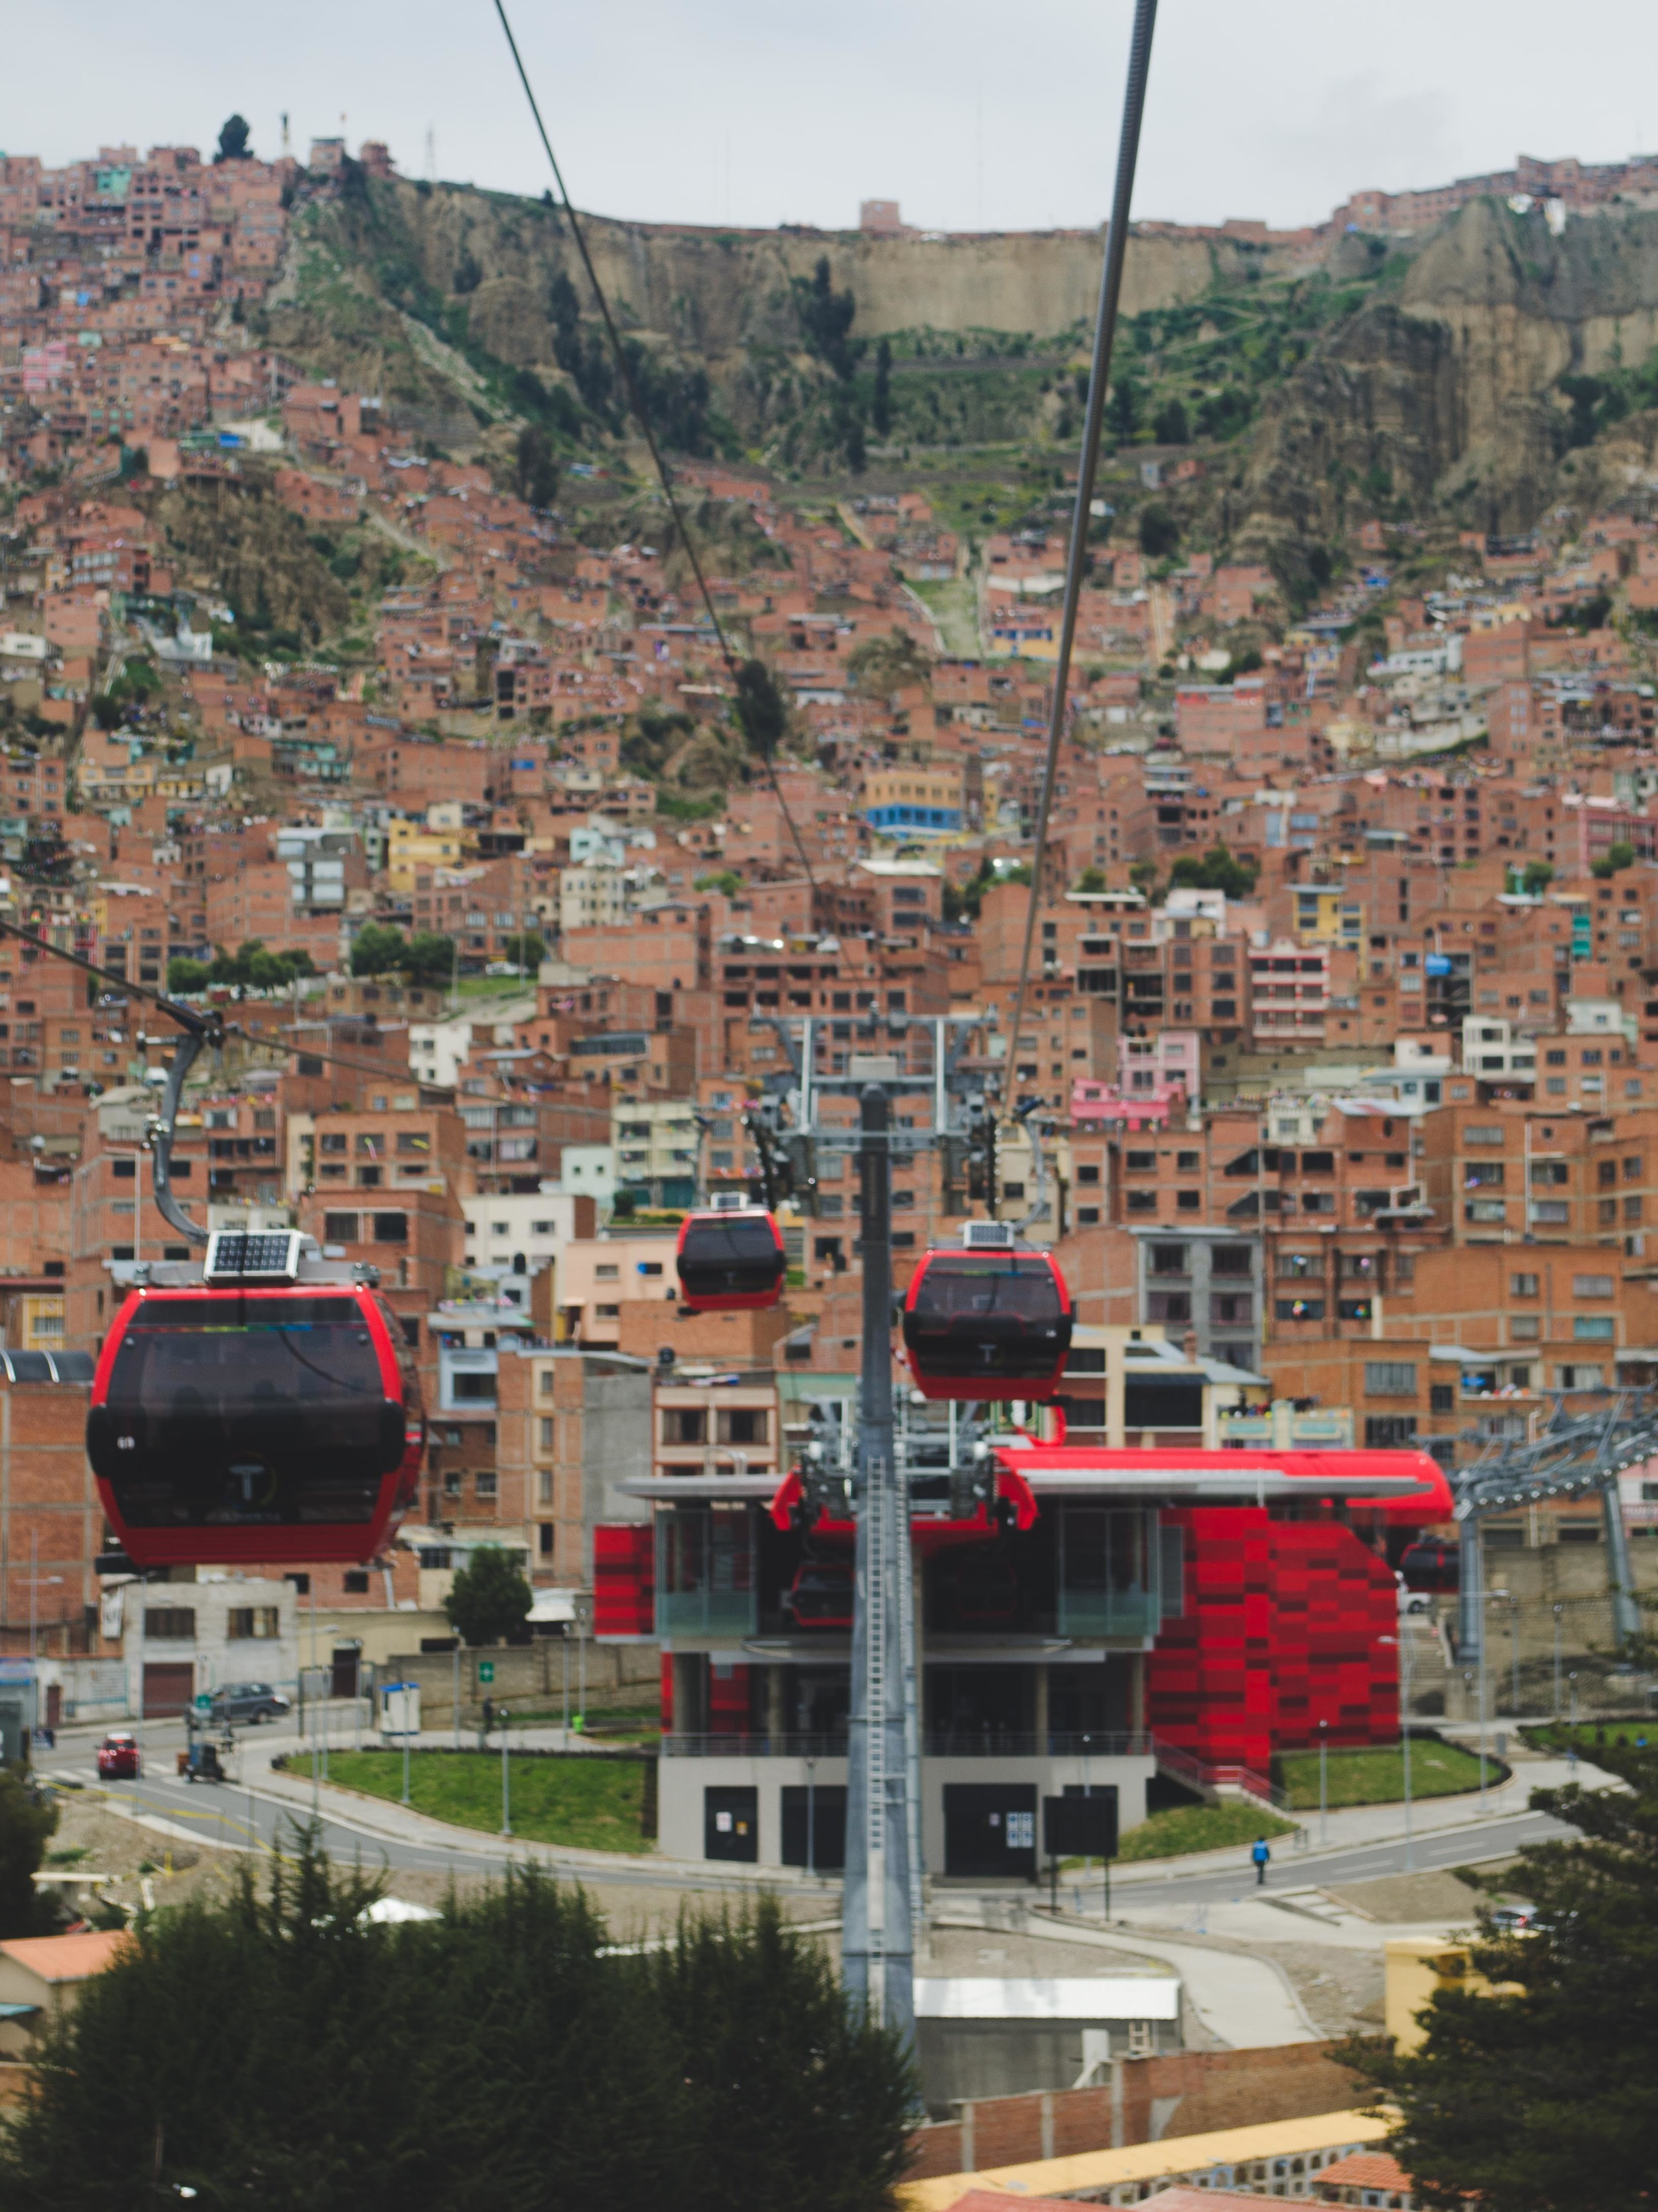 one of the red stations along the route to El Alto